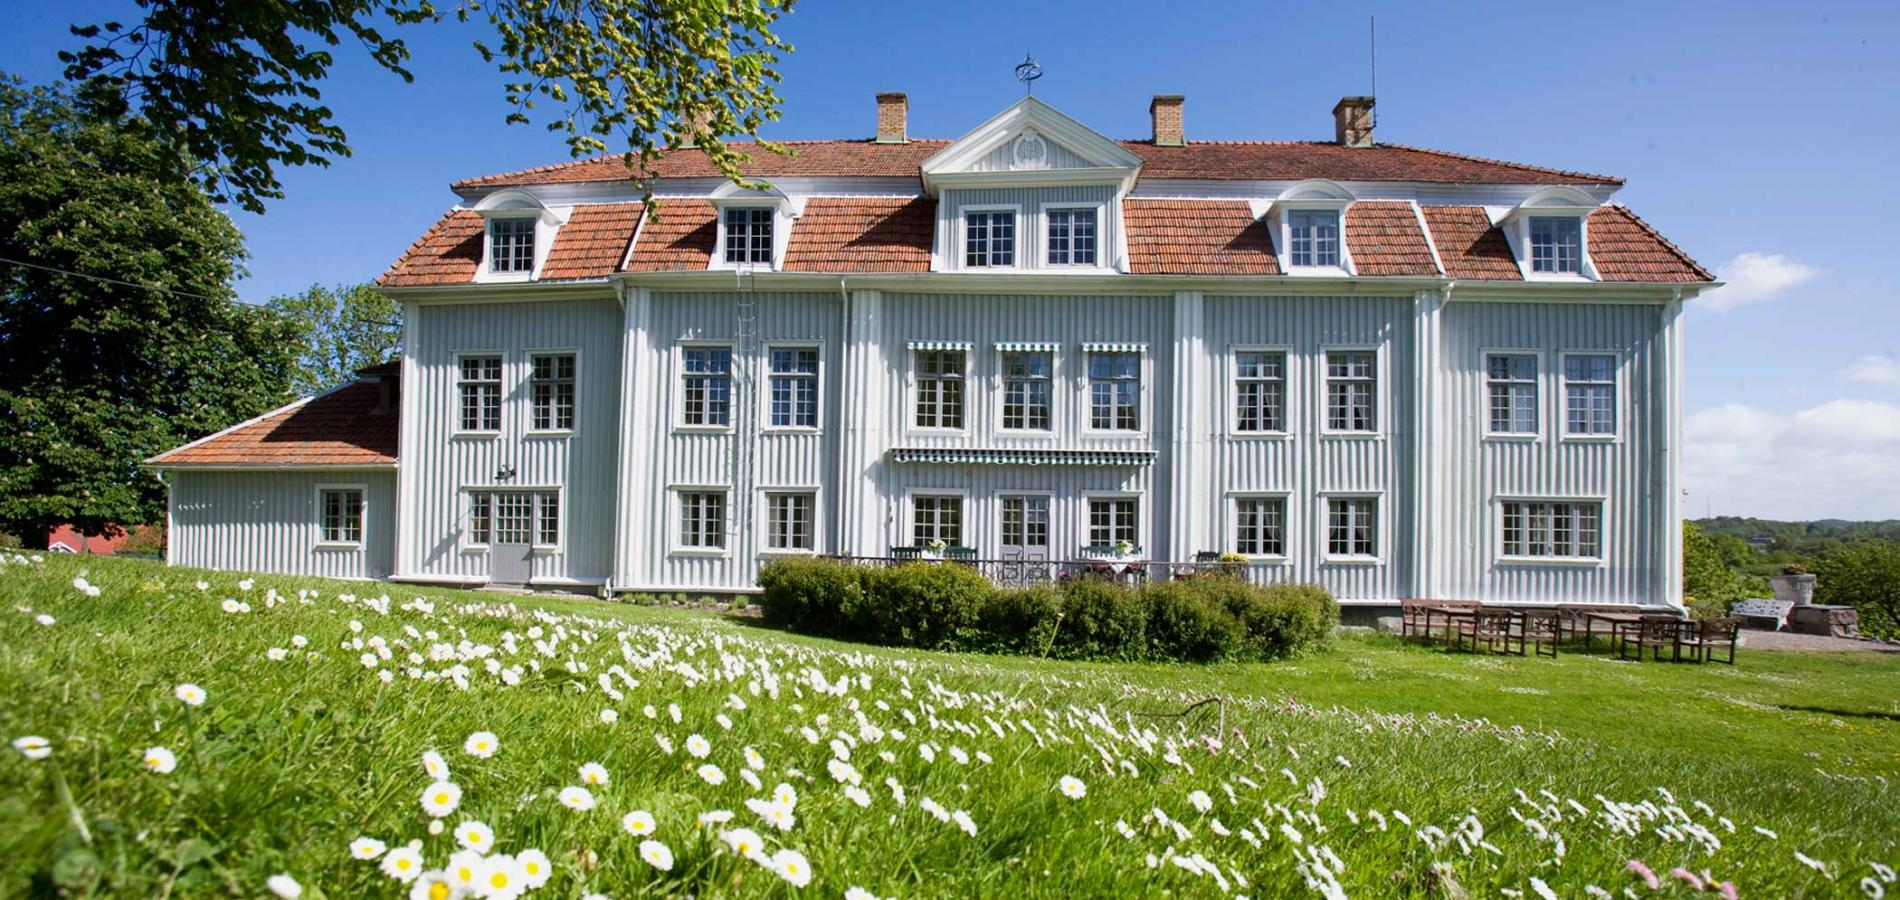 Tofta Herrgård - Lycke Golf & Country Club